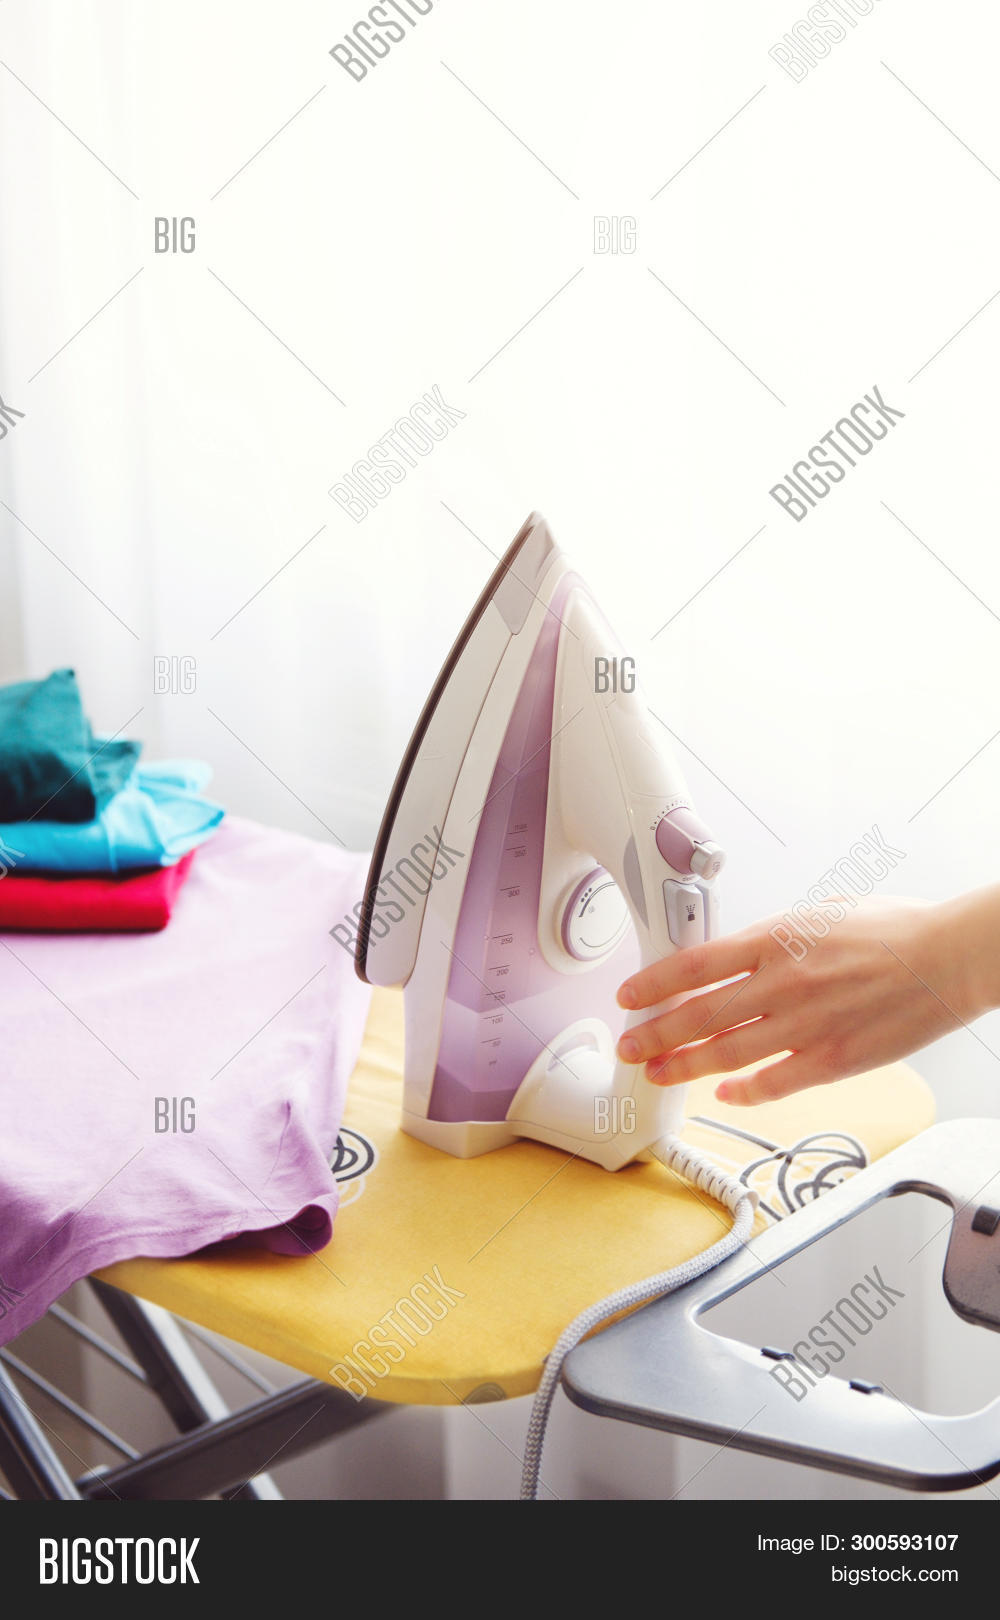 The Woman The Housewife Irons Clothes At Home. On The Ironing Board Iron And Purple T-shirt, As Well